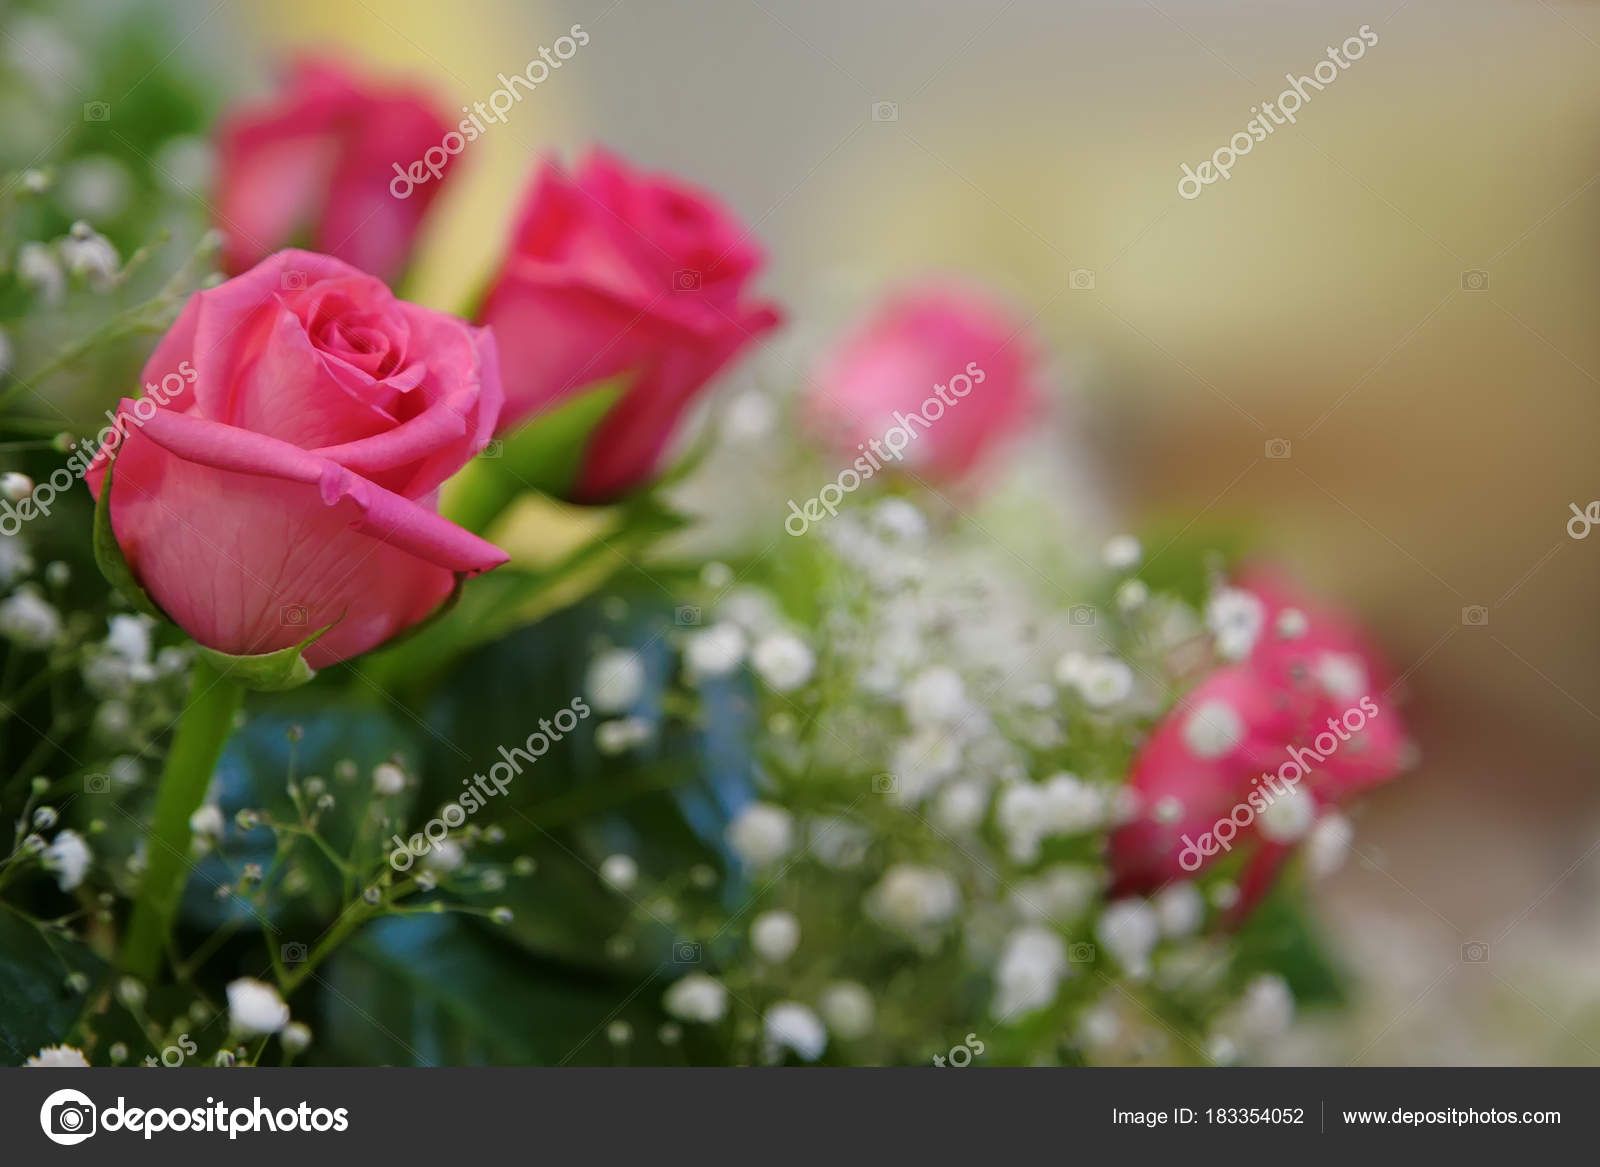 A bouquet of roses with small white flowers stock photo a bouquet of roses with small white flowers angular composition photo by jekatarinka izmirmasajfo